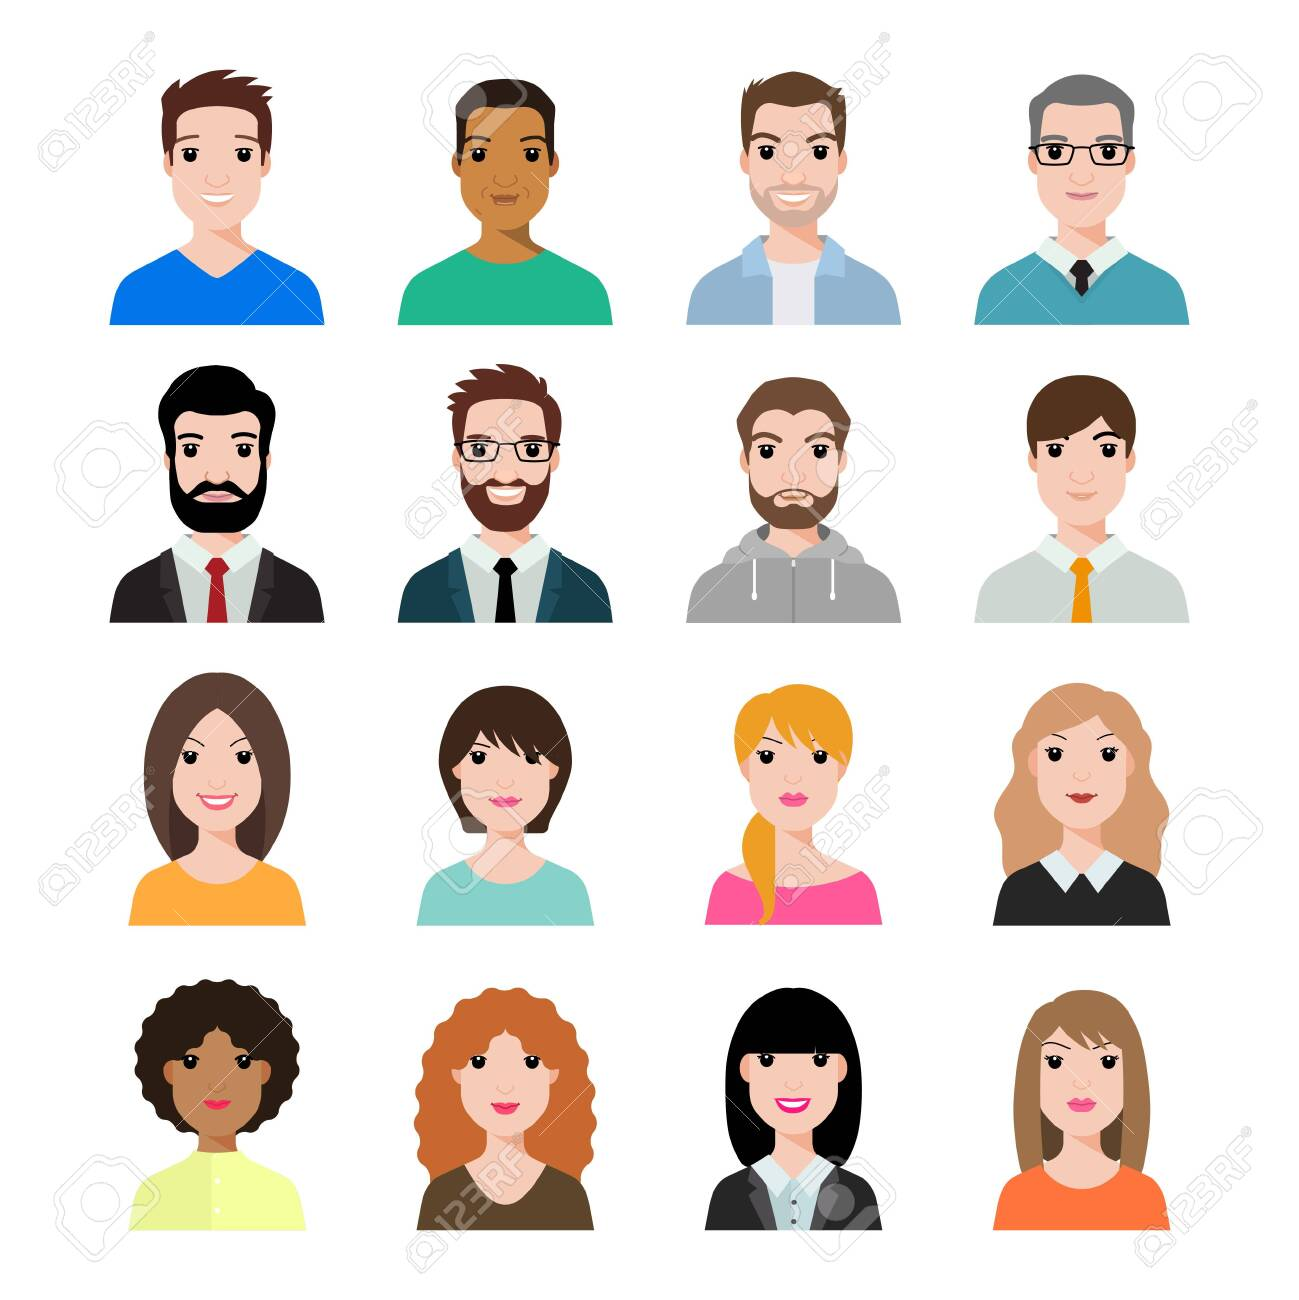 People icons set avatar profile diverse faces (use for social network) . Vector illustration of flat design people characters. - 153297491